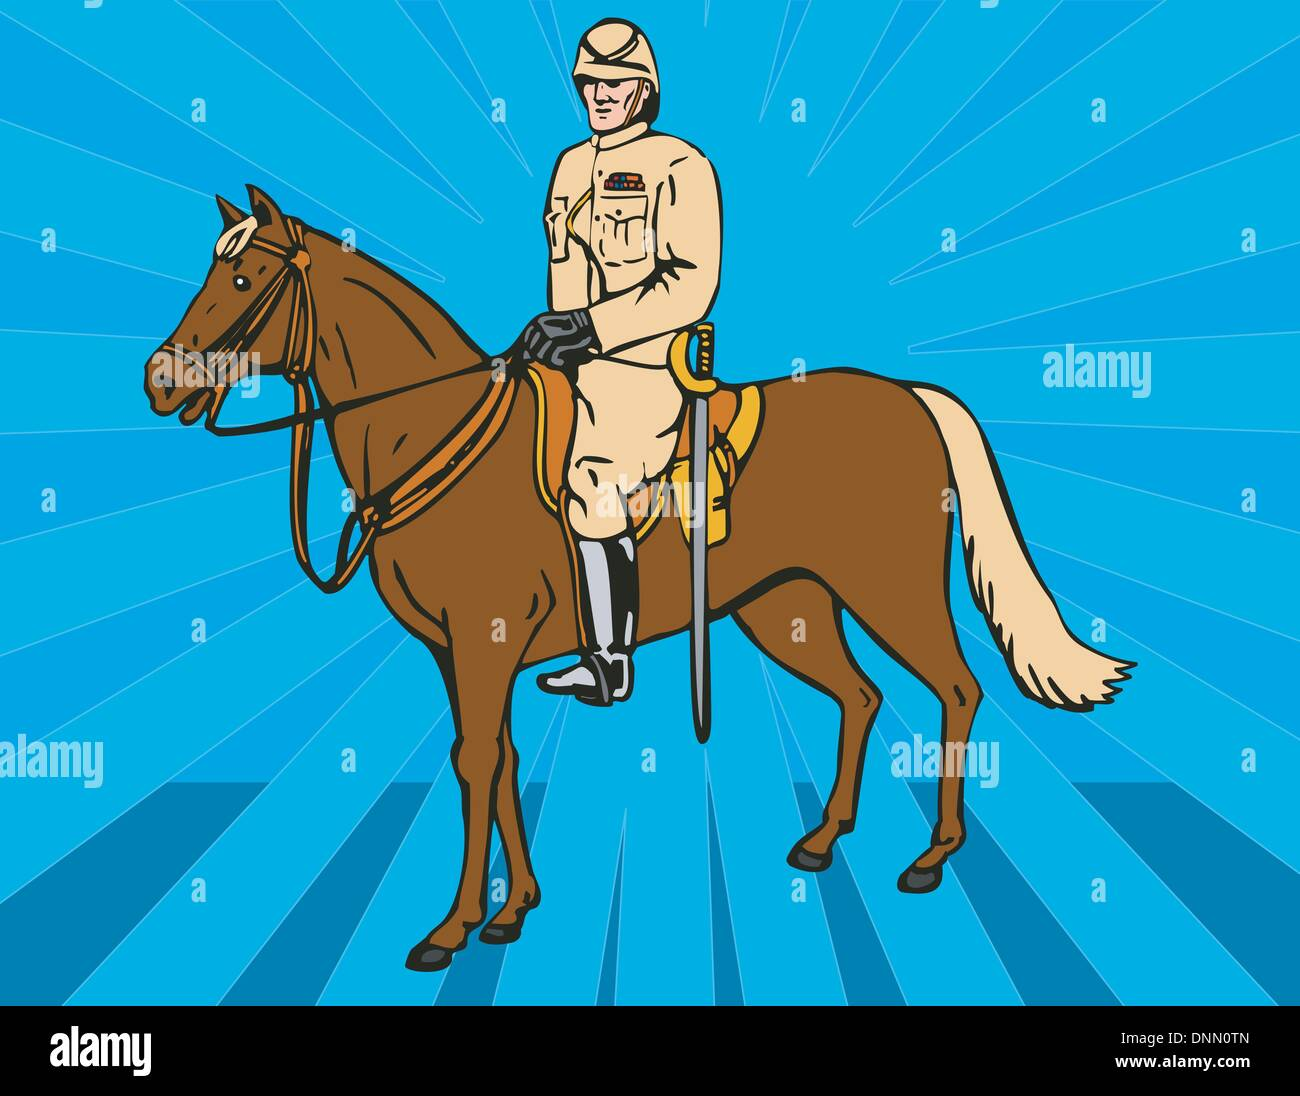 Illustration of a hussar on horseback done in retro style. - Stock Vector